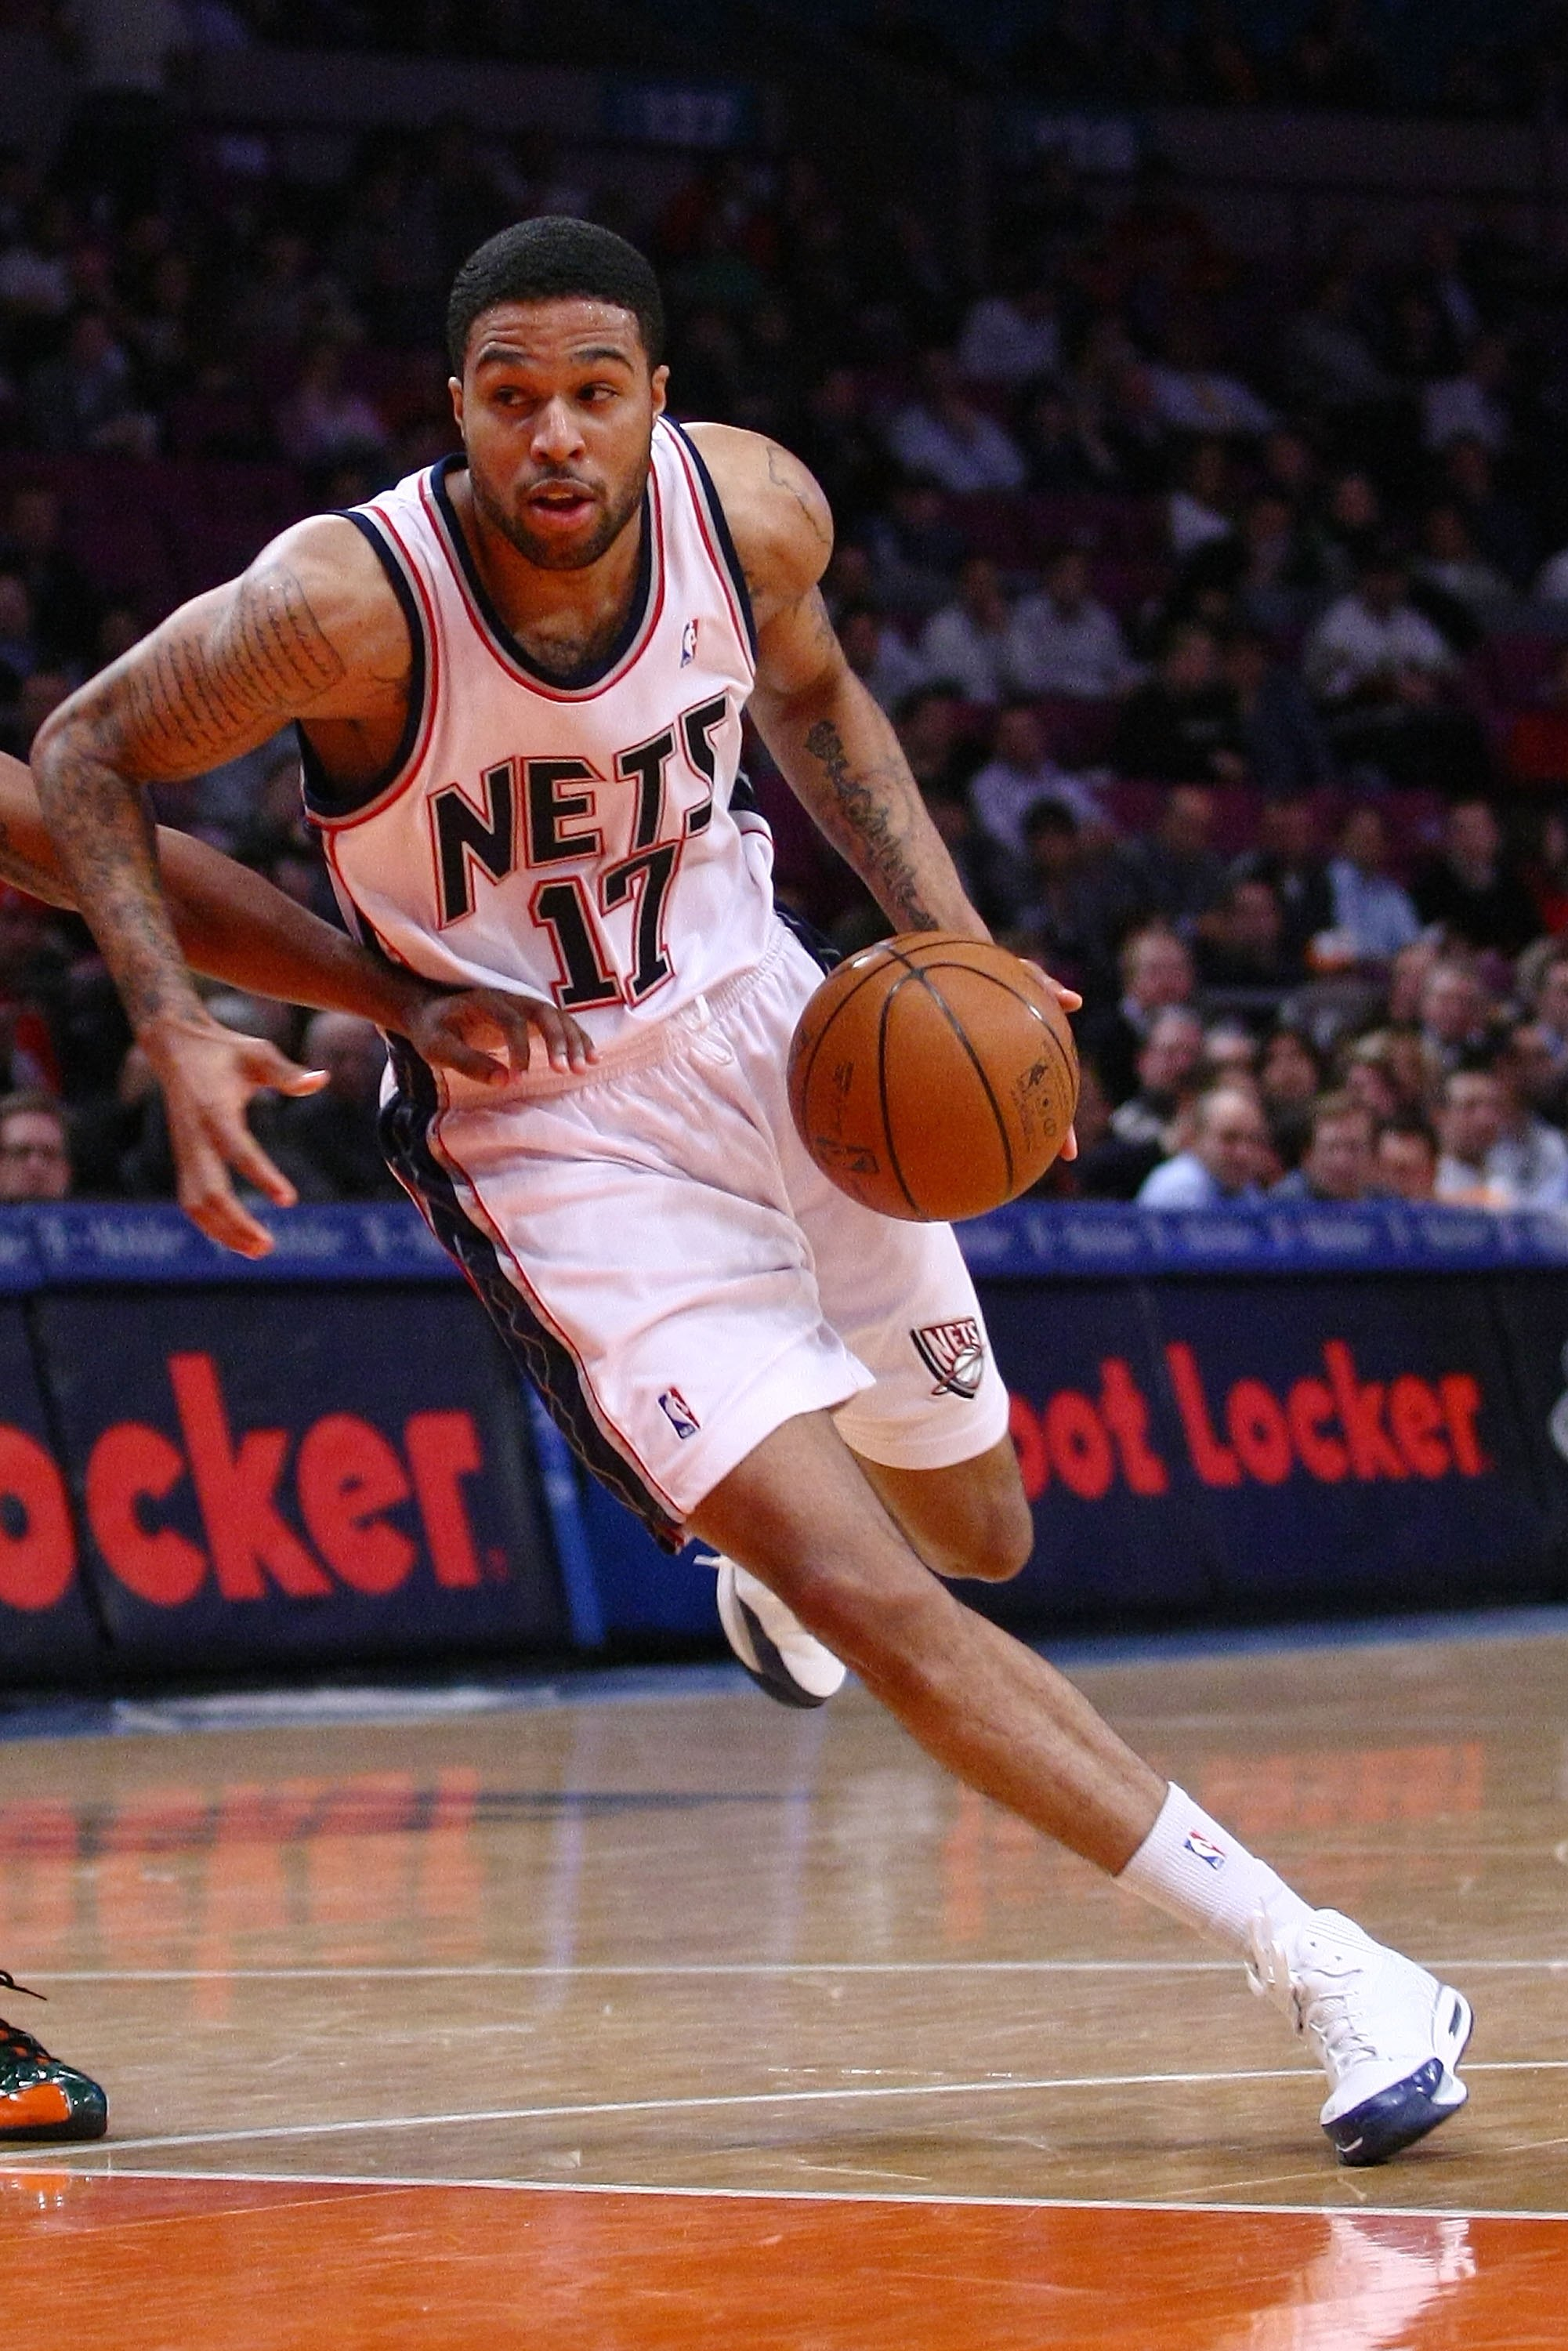 NEW YORK - MARCH 18:  Chris Douglas-Roberts #17 of the New Jersey Nets drives against the New York Knicks at Madison Square Garden March 18, 2009 in New York City. NOTE TO USER: User expressly acknowledges and agrees that, by downloading and/or using this